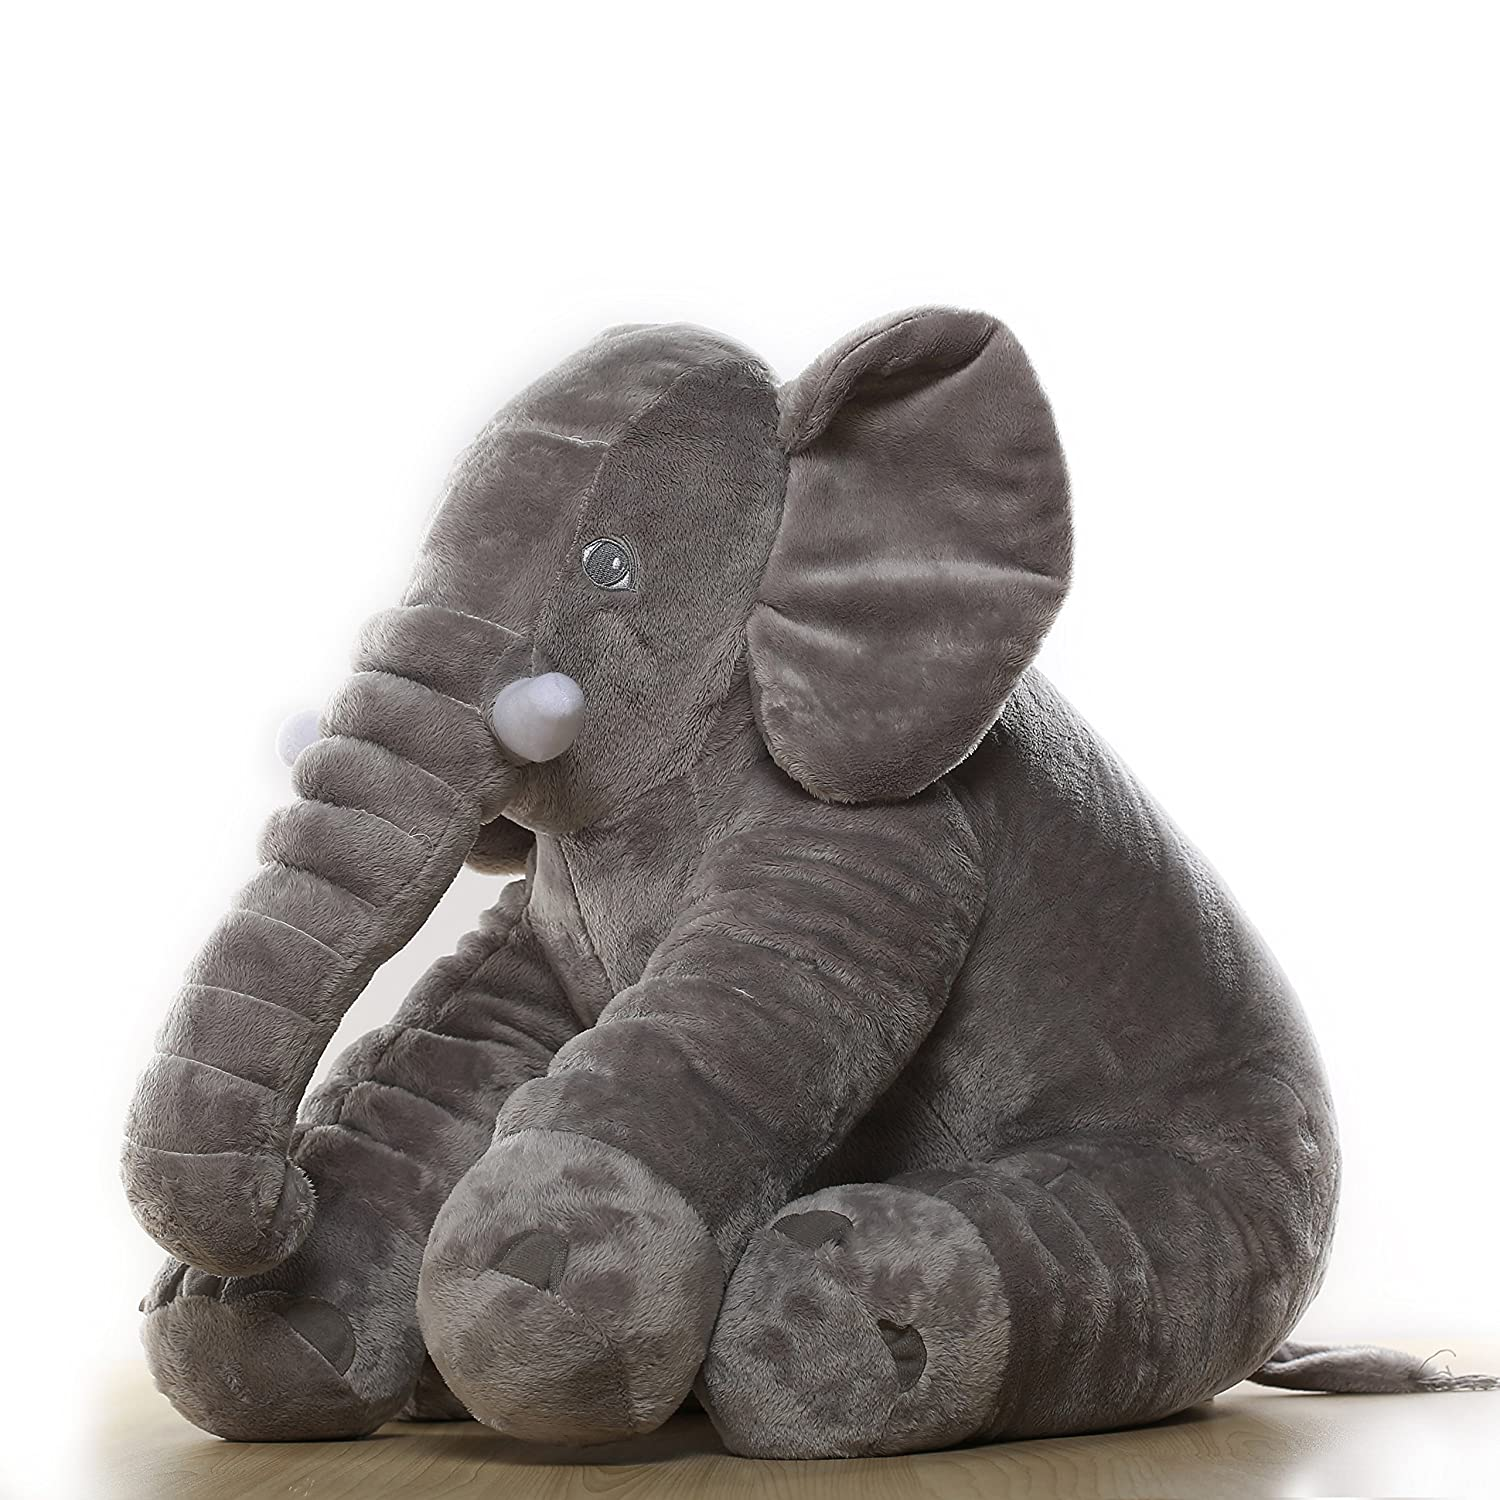 MorisMos Stuffed Elephant Toy Pillow Grey 60cm